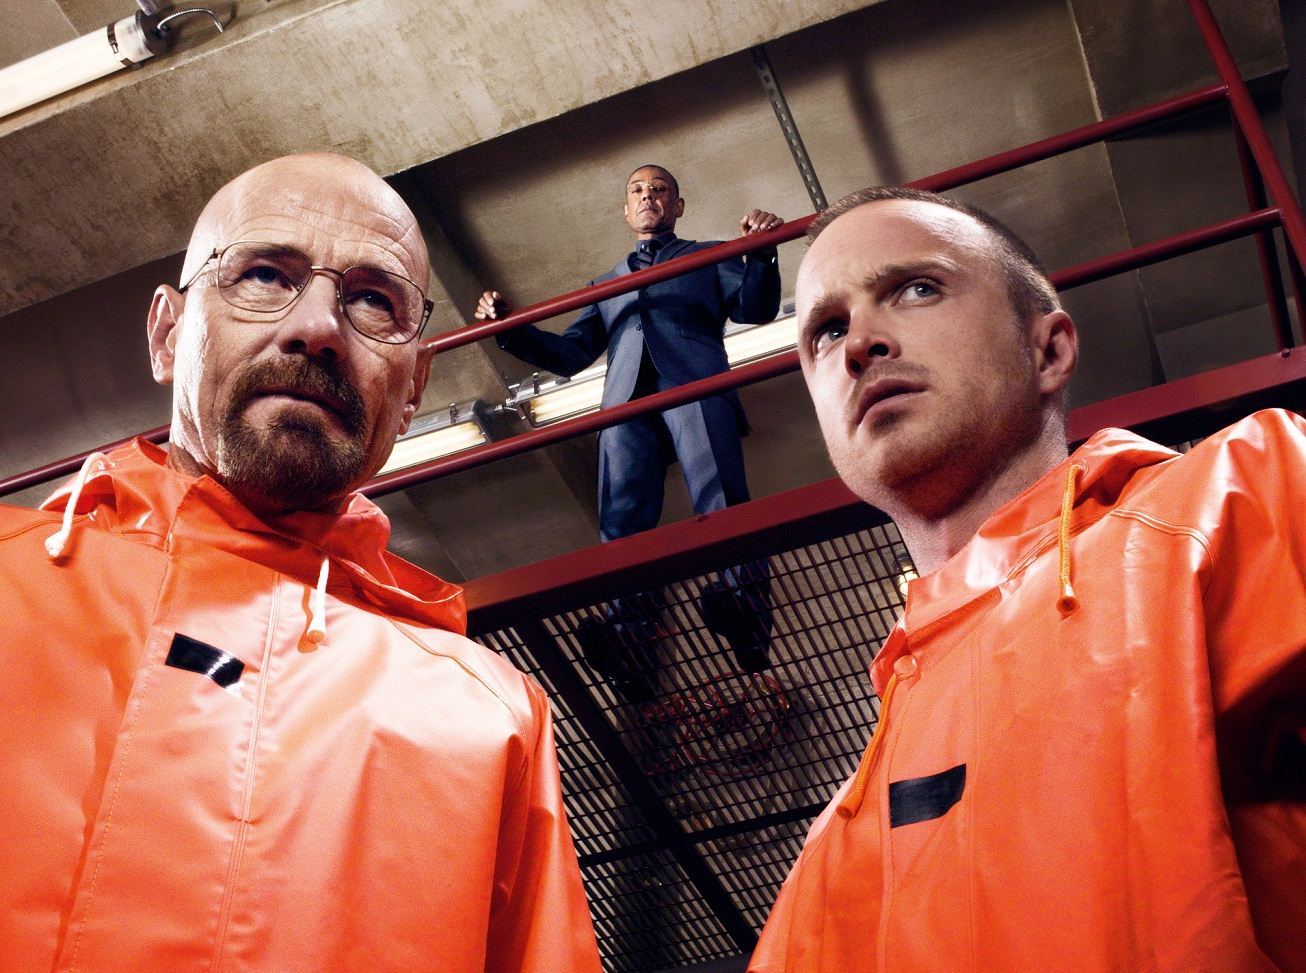 boom dvd reviews - Breaking Bad series 3